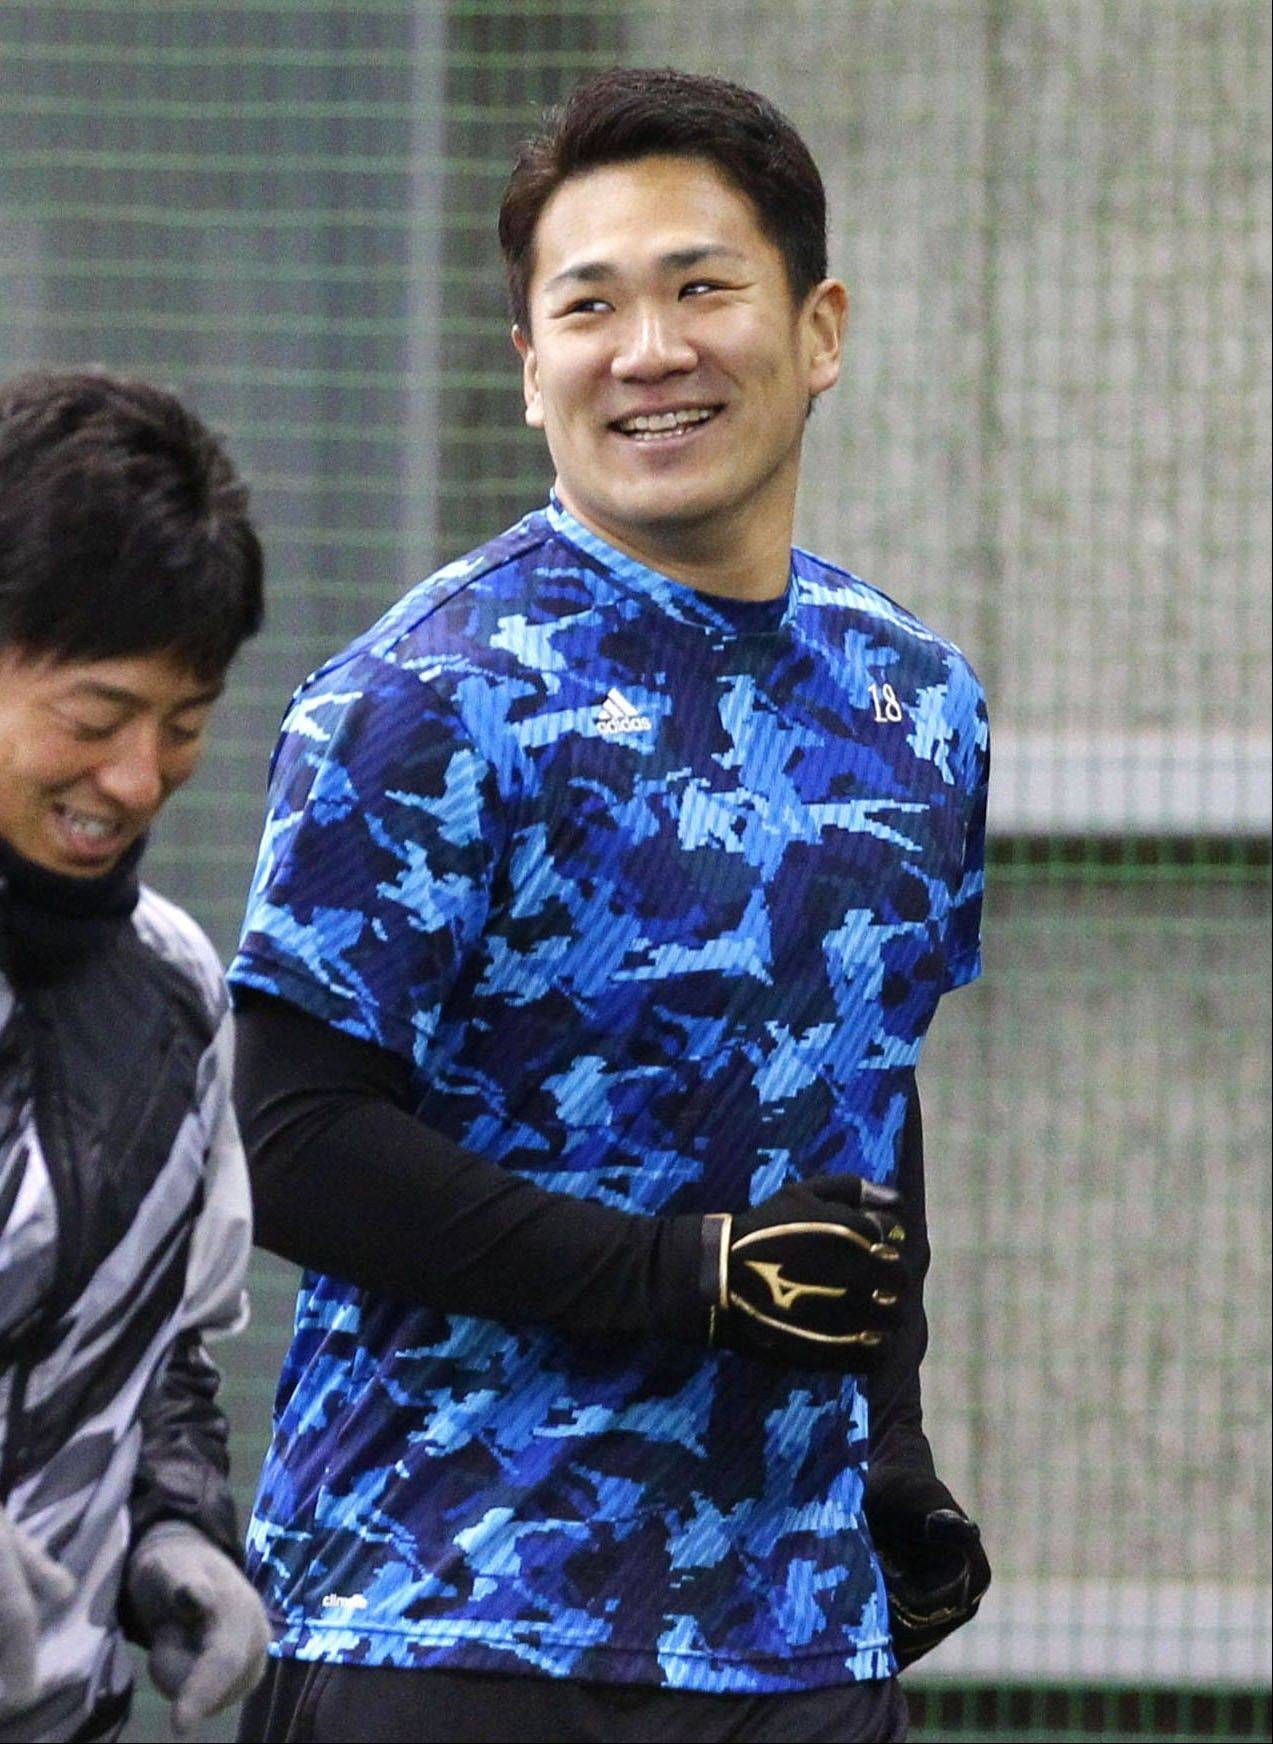 Japanese pitcher Masahiro Tanaka, right, smiles as he runs with his teammate and pitcher Manabu Mima in the morning workout at the Rakuten Golden Eagles' indoor training facility in Sendai, northeastern Japan, Thursday morning, Jan. 23, 2014. The New York Yankees capped an offseason spending spree by agreeing Wednesday, Jan. 22 to a $155 million, seven-year contract with prized 25-year-old right-hander Tanaka. (AP Photo/Kyodo News) JAPAN OUT, CREDIT MANDATORY